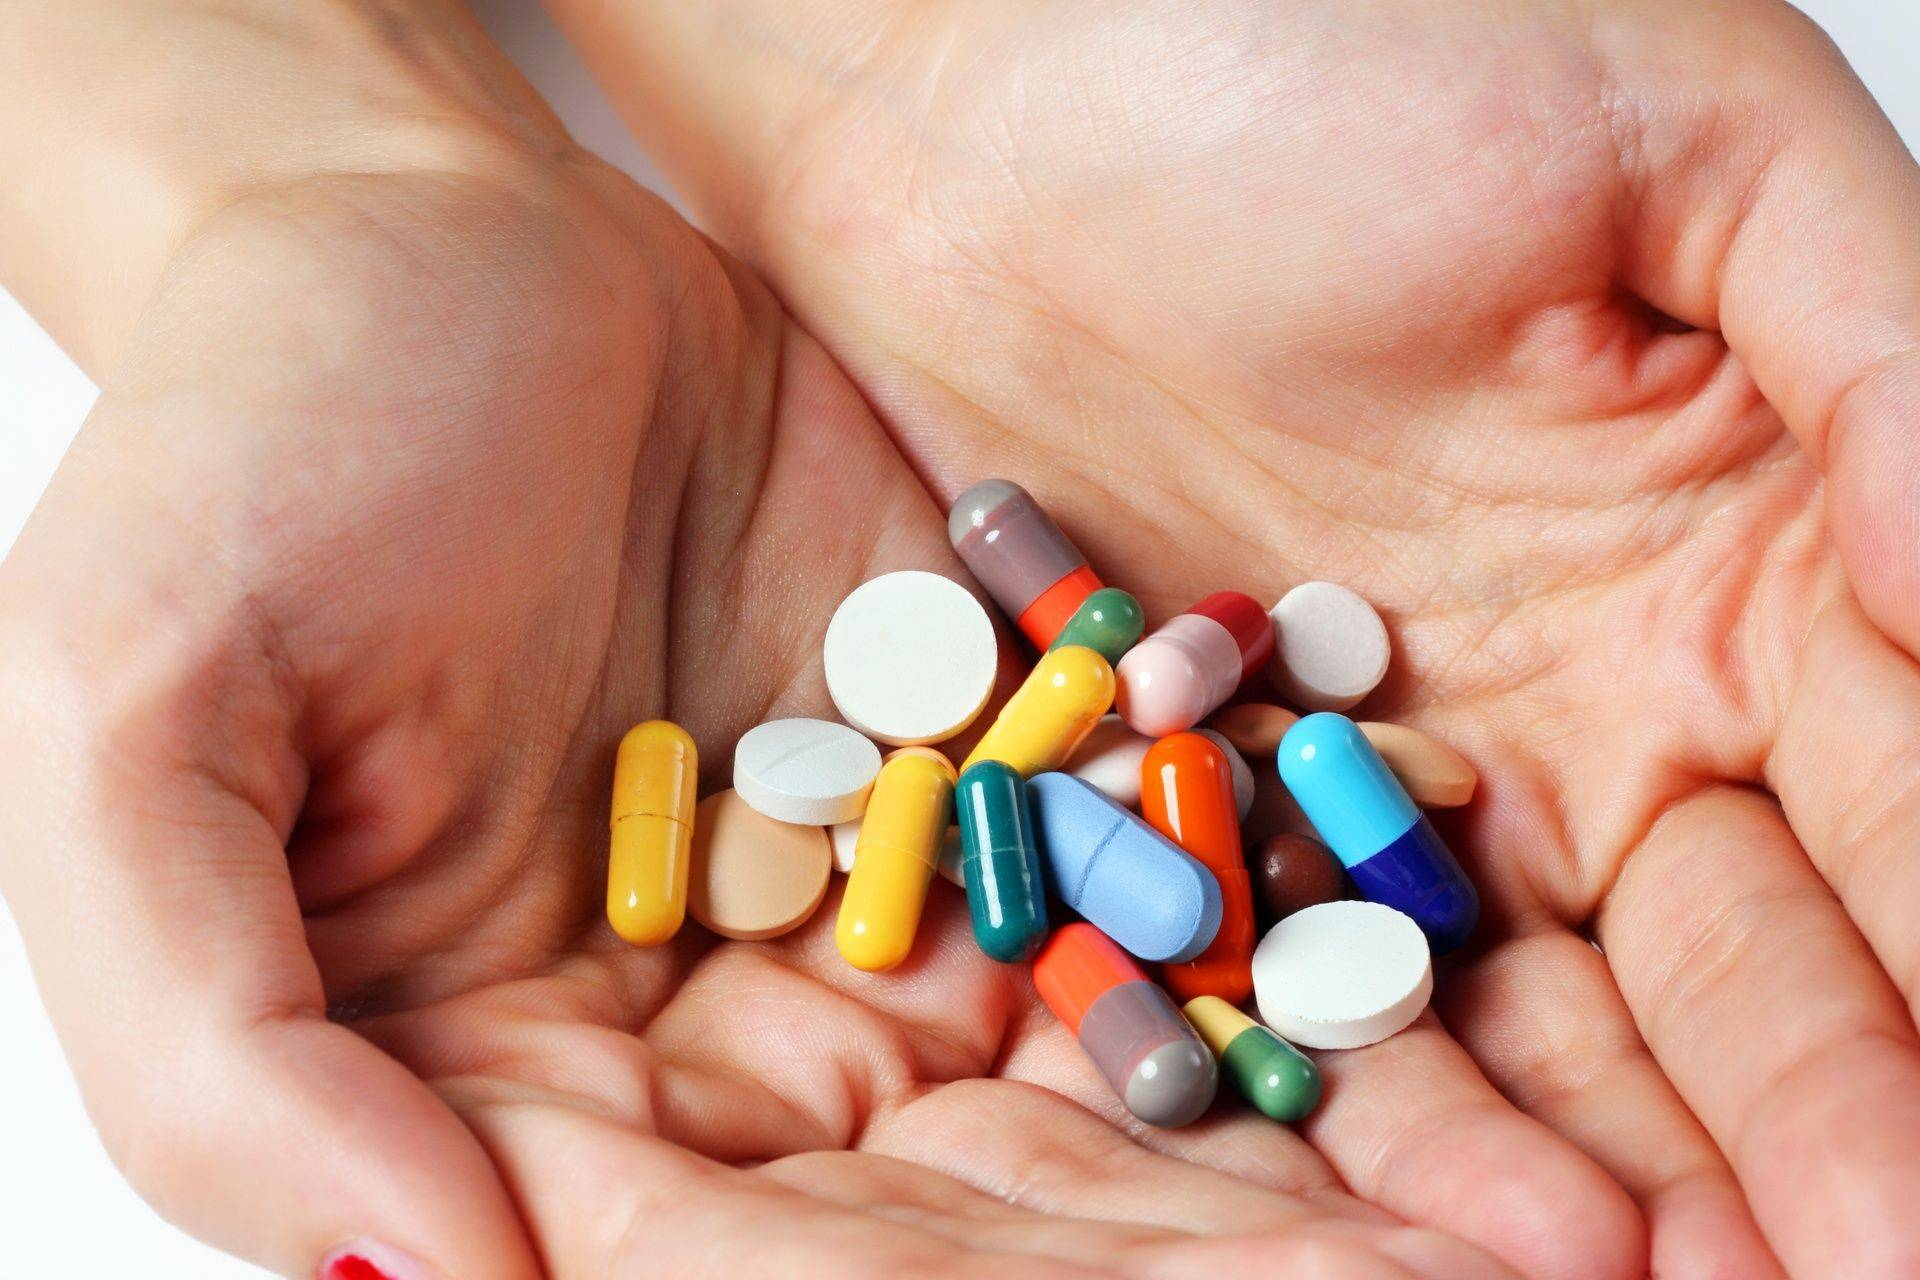 Learn how to safely distribute medications to patients in our medication management classes.